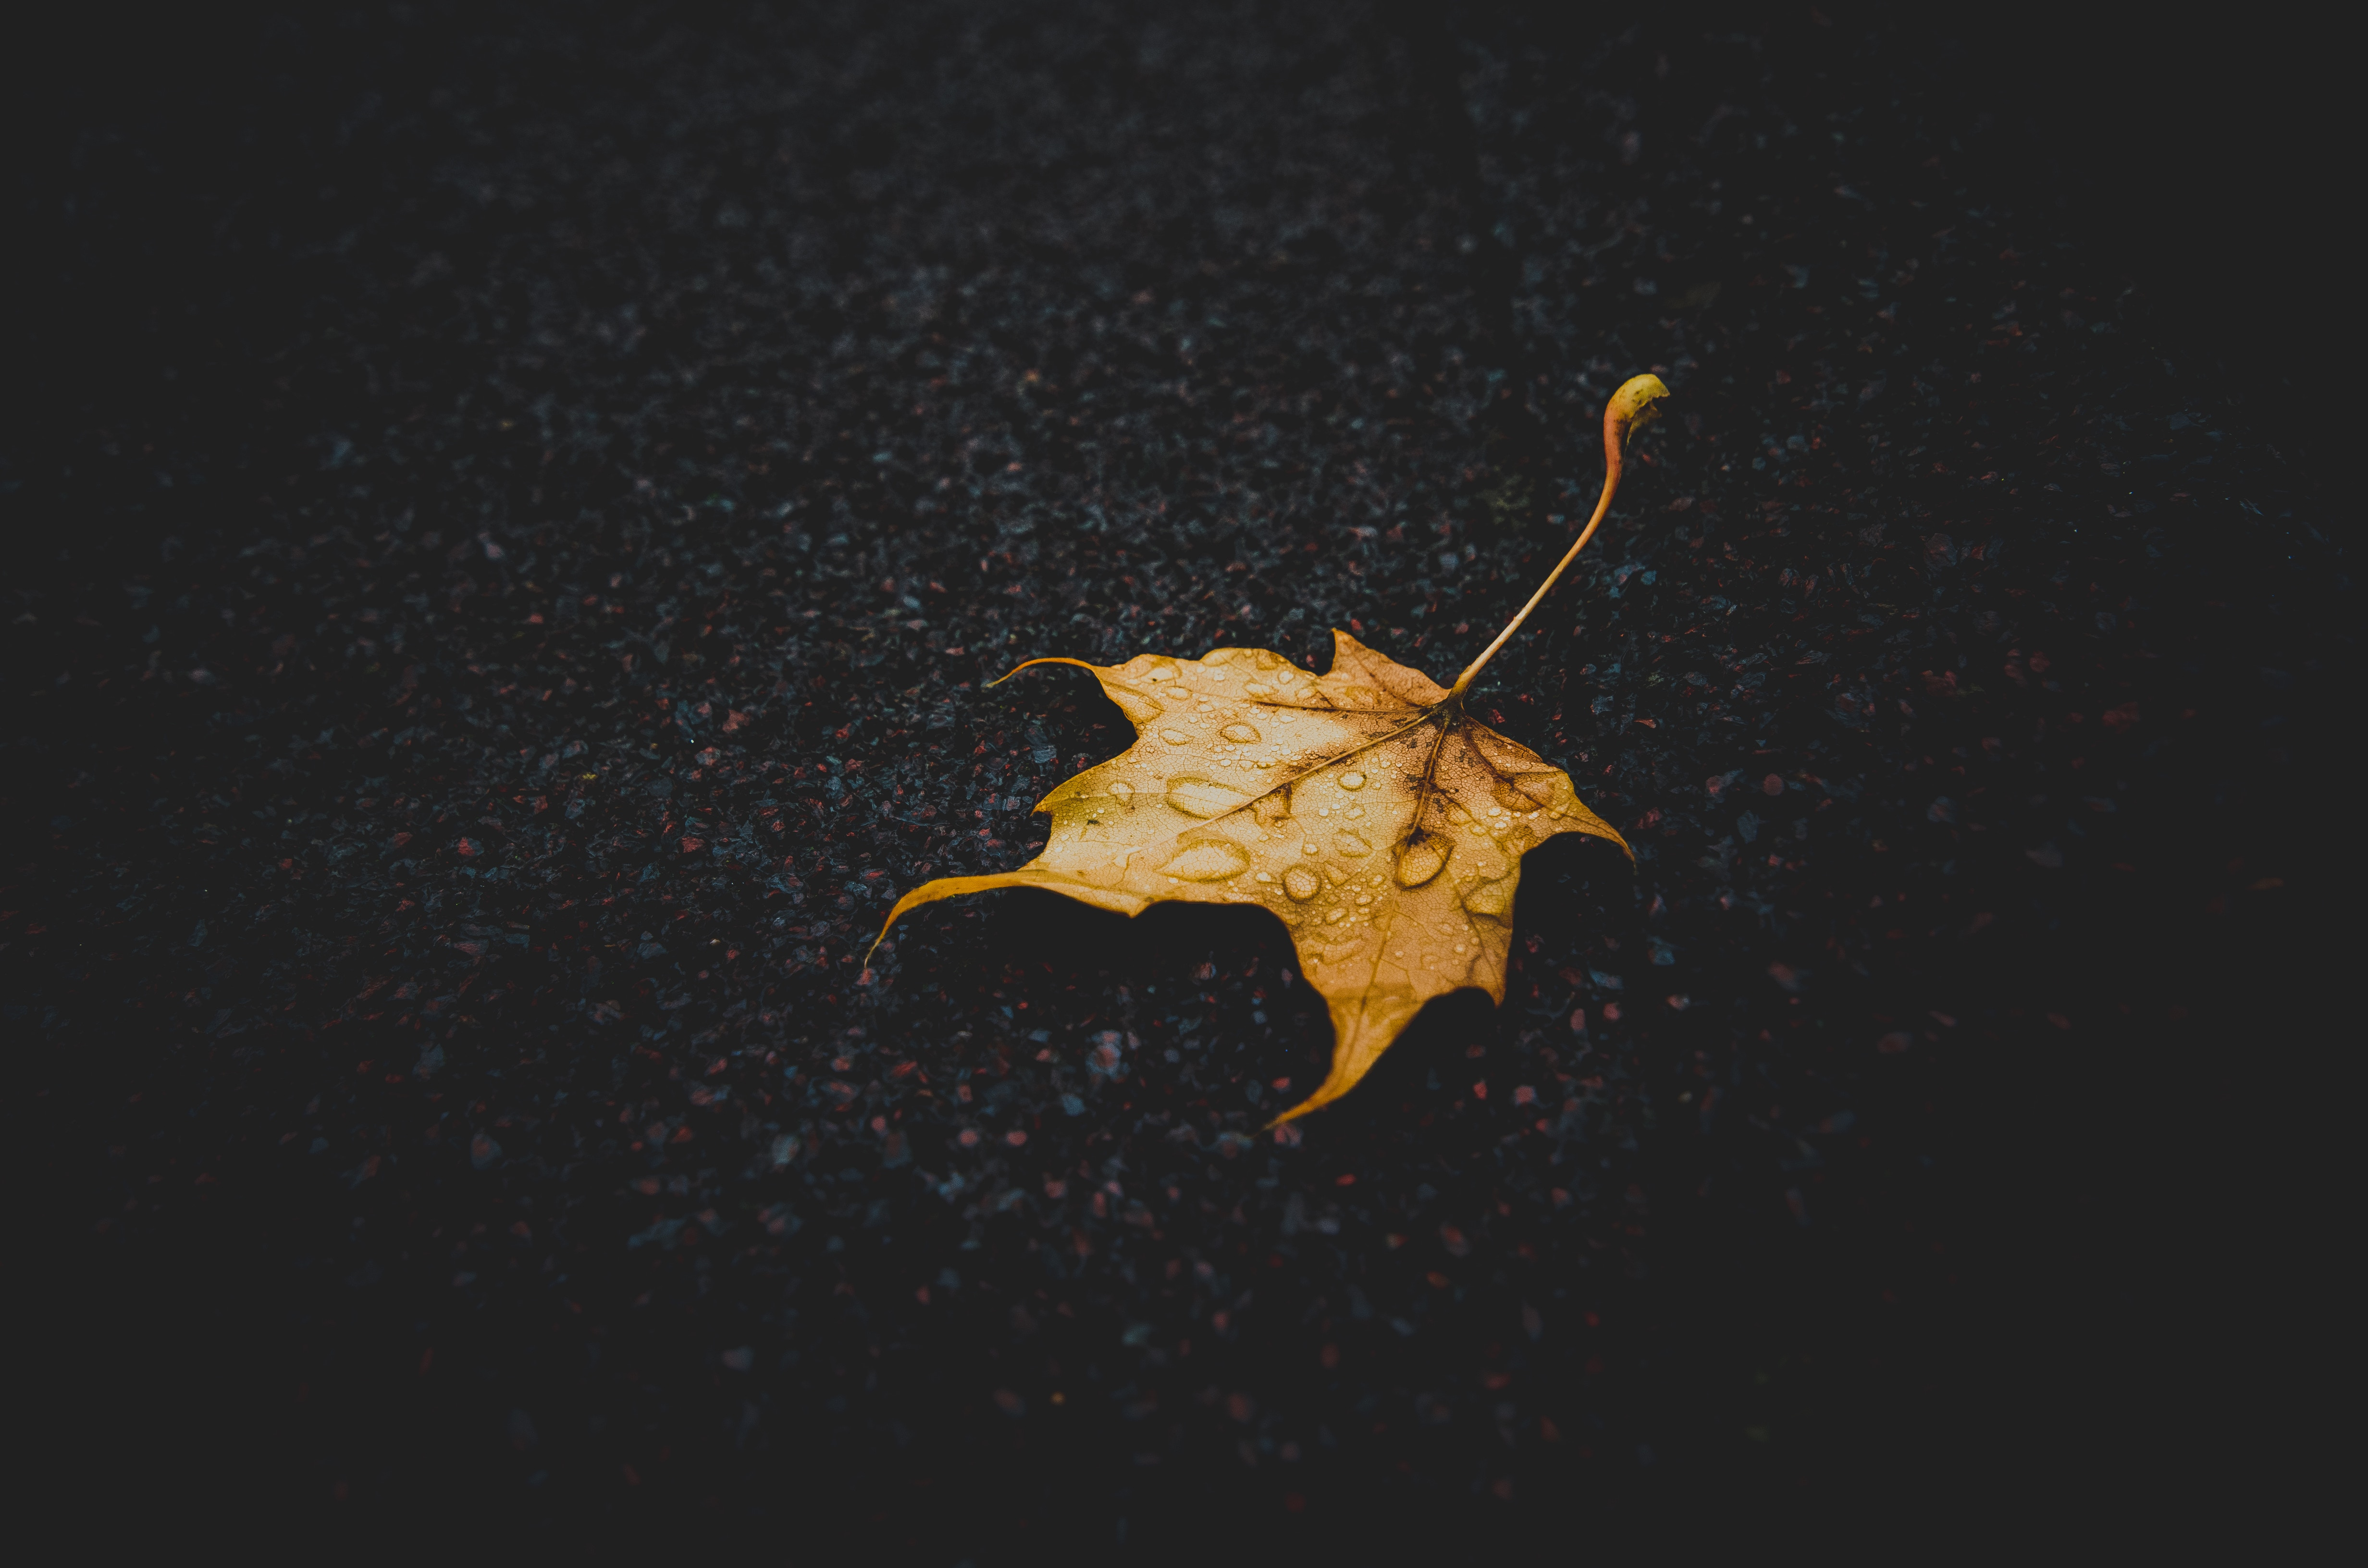 53195 download wallpaper Dark, Sheet, Leaf, Maple, Dry, Fallen, Drops screensavers and pictures for free